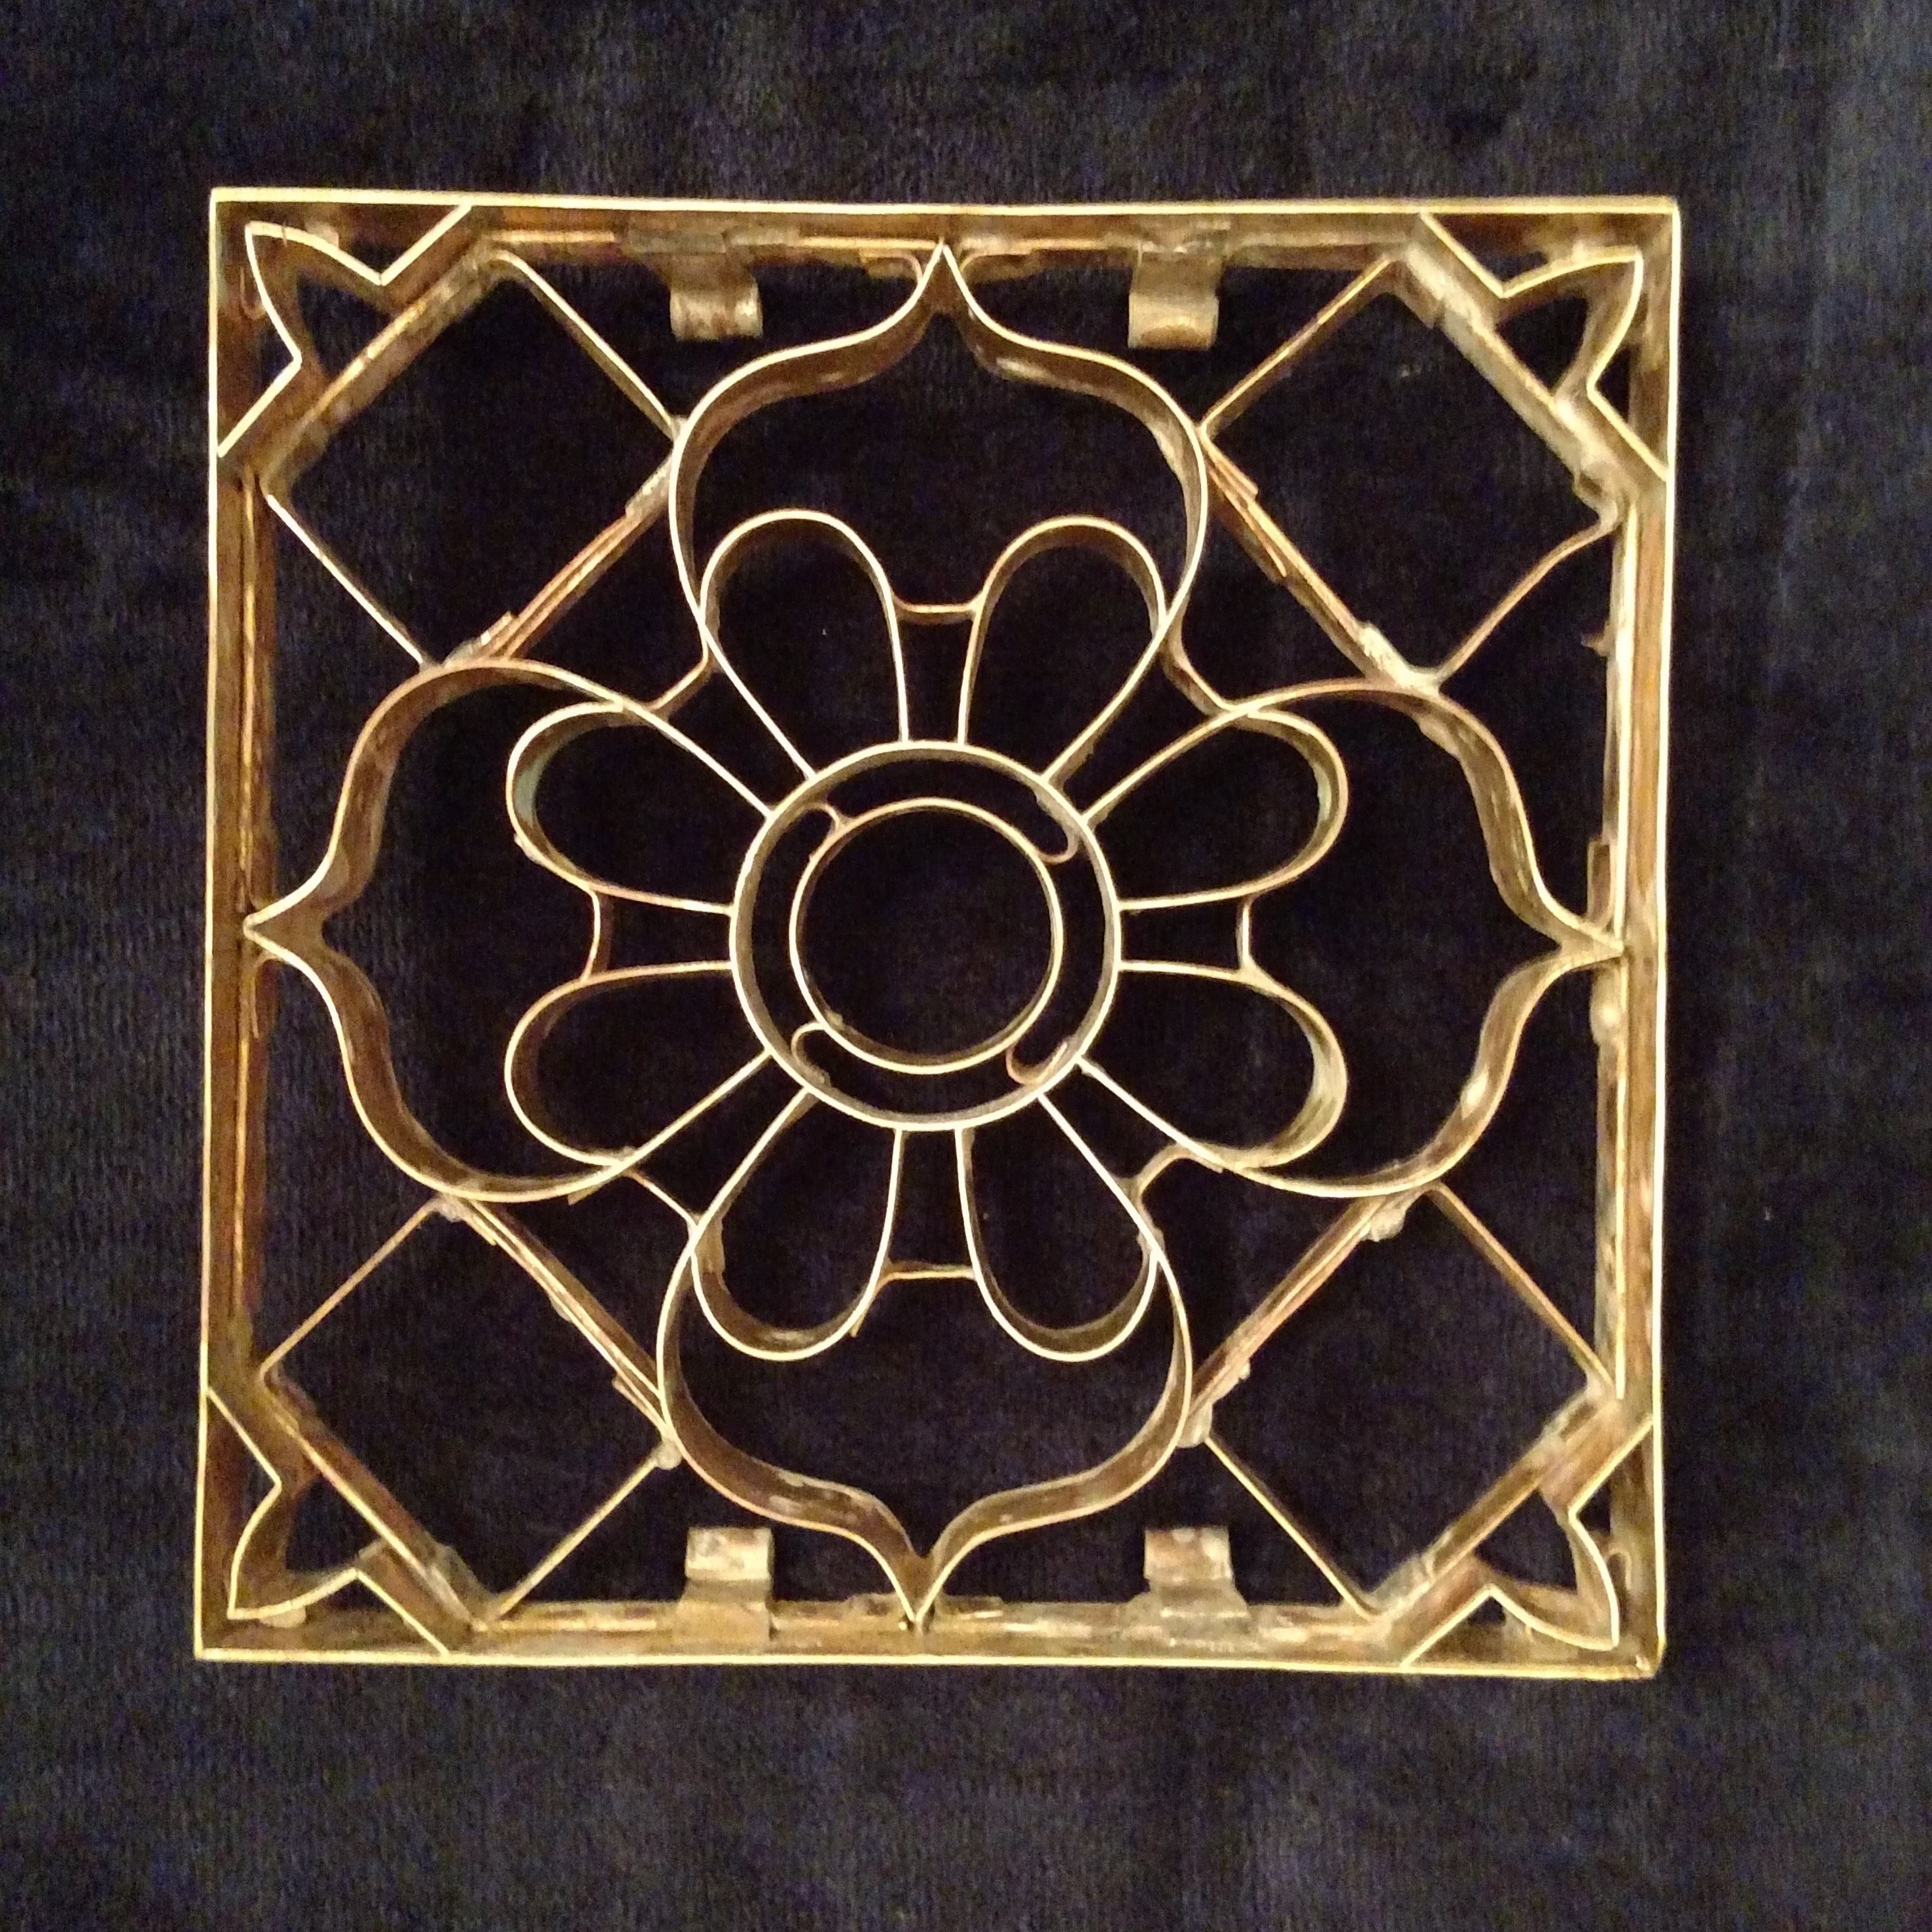 tile mold and steel mold art and molds sarl au art moule